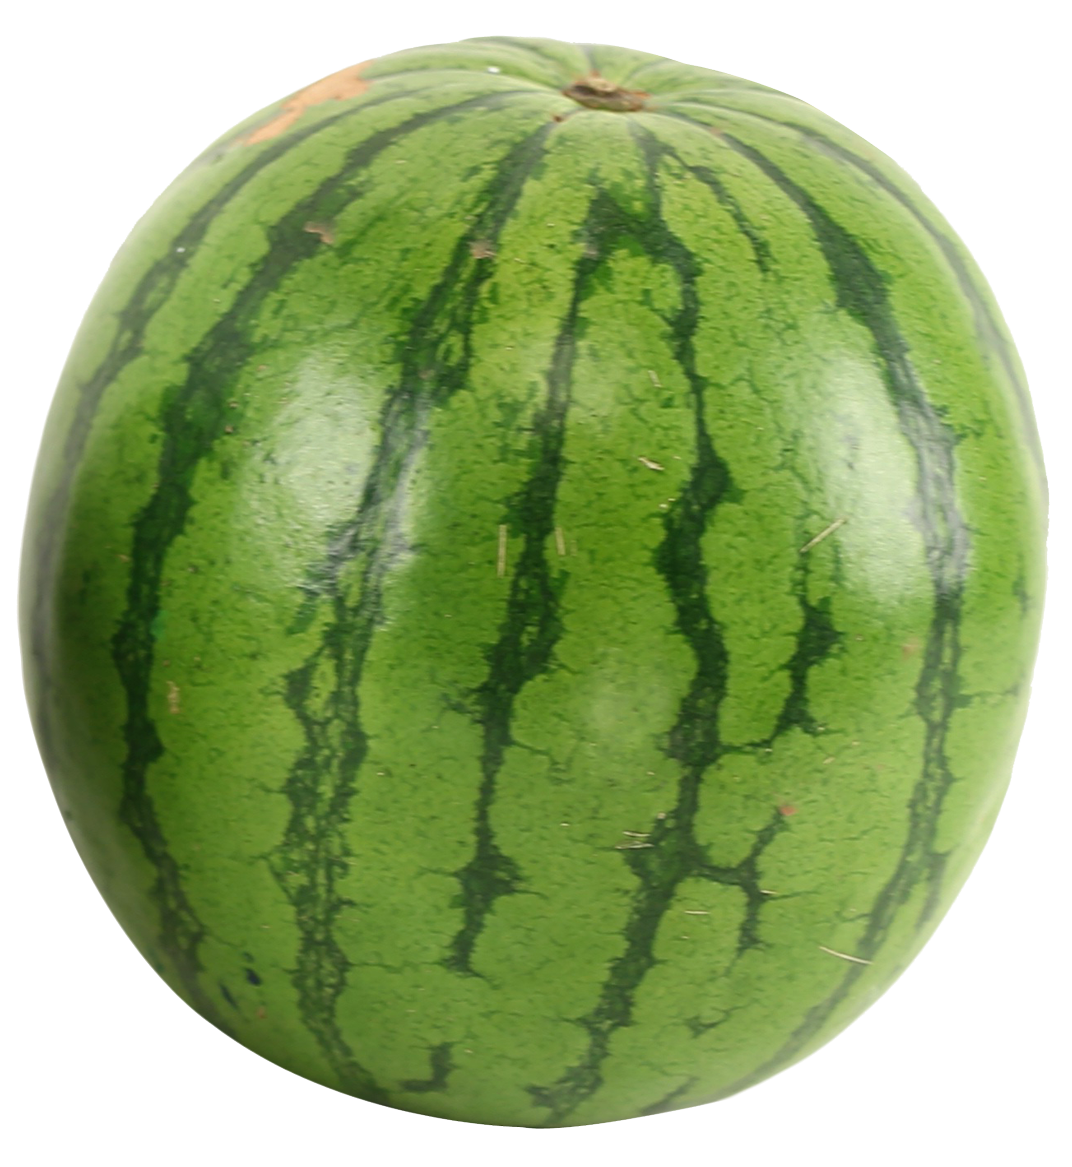 Png watermelon. Image purepng free transparent